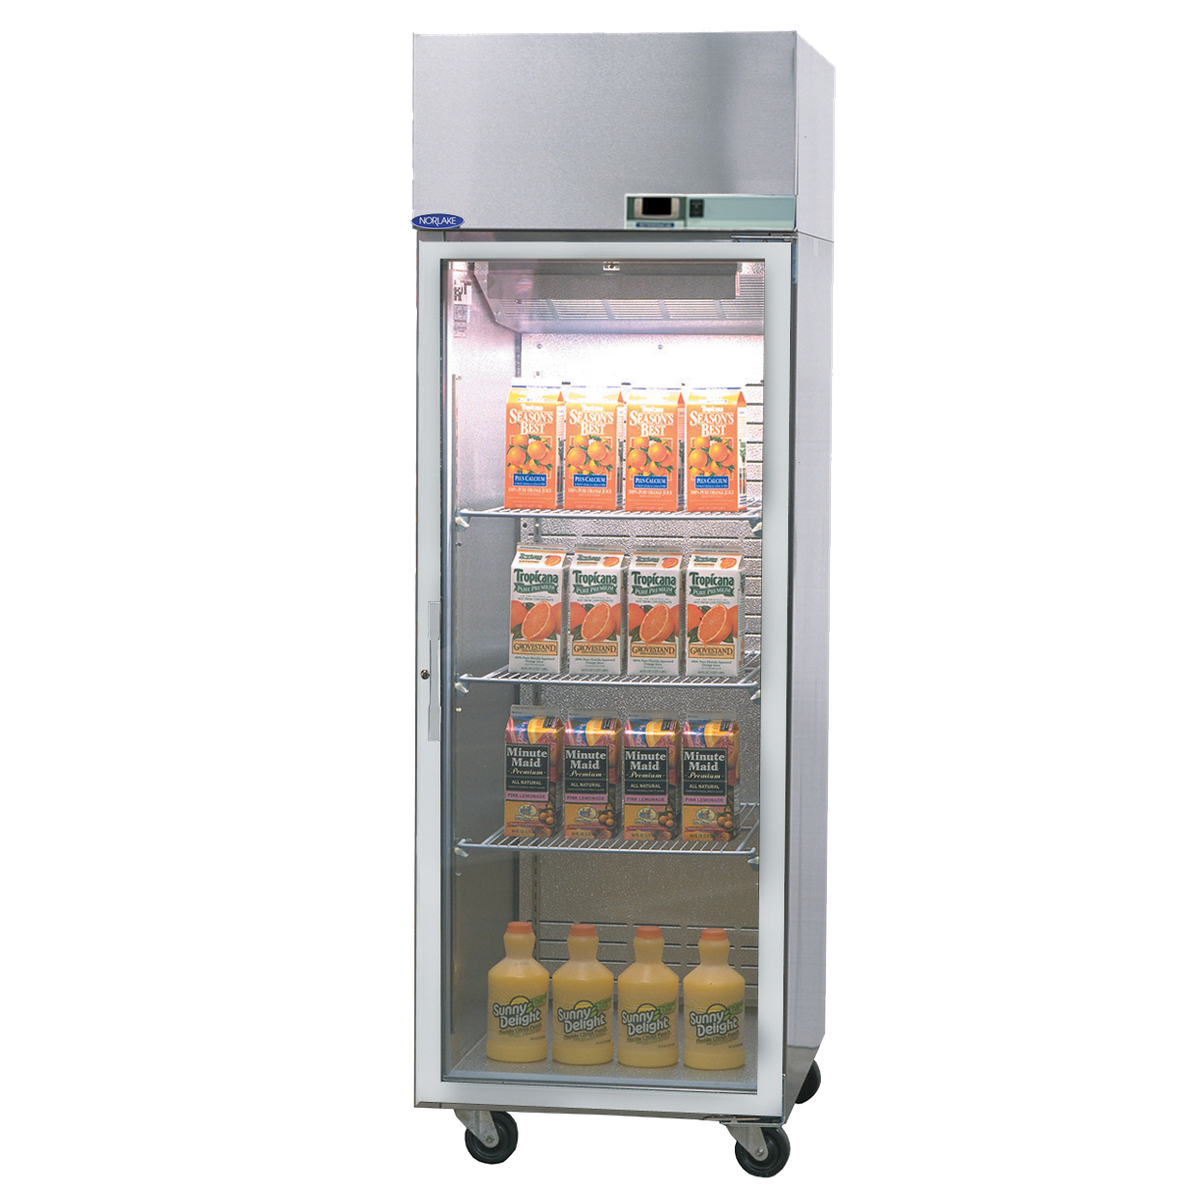 Nor-Lake NR241SSG/0 refrigerator, reach-in